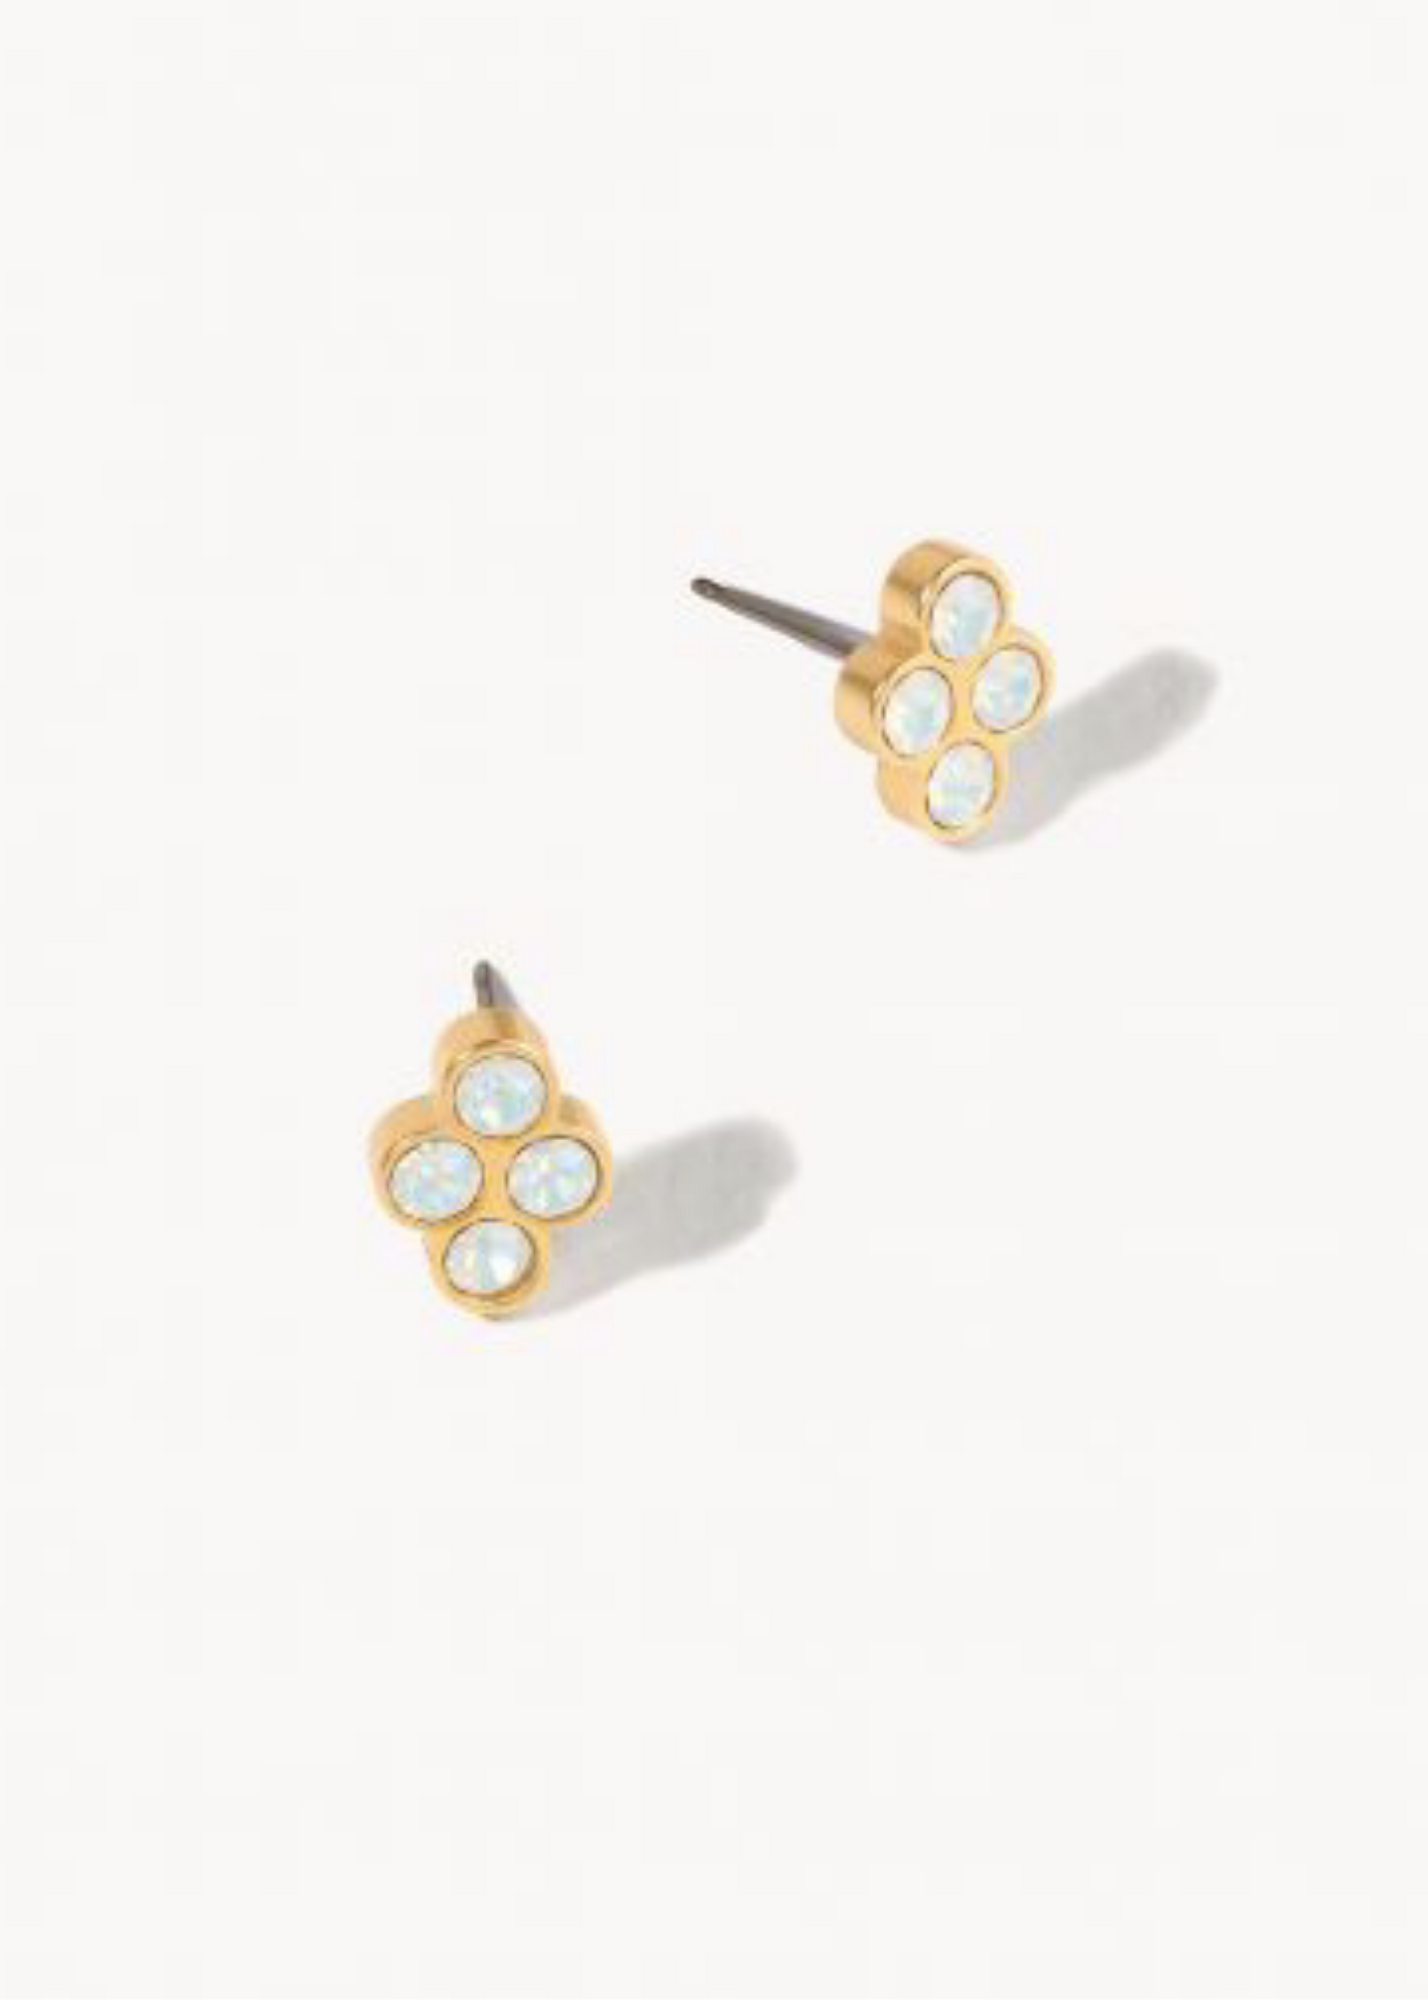 Delicate Sprite Stud Earrings - Gold/White Opal